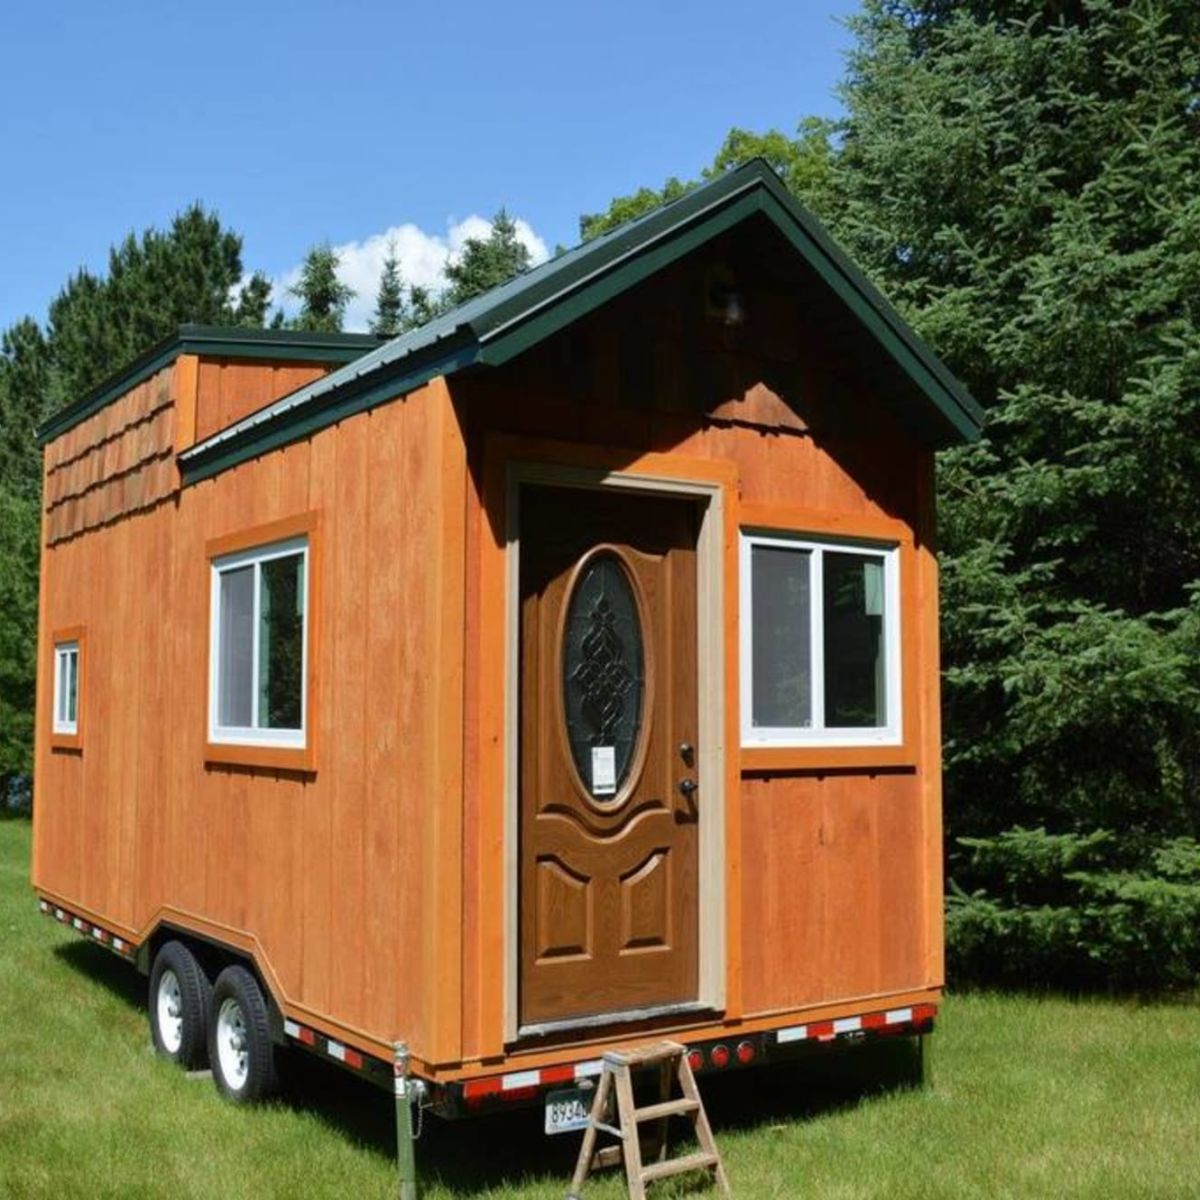 A Place Of Your Own Built With Love Tiny House For Sale In Bemidji Minnesota Tiny House Listings